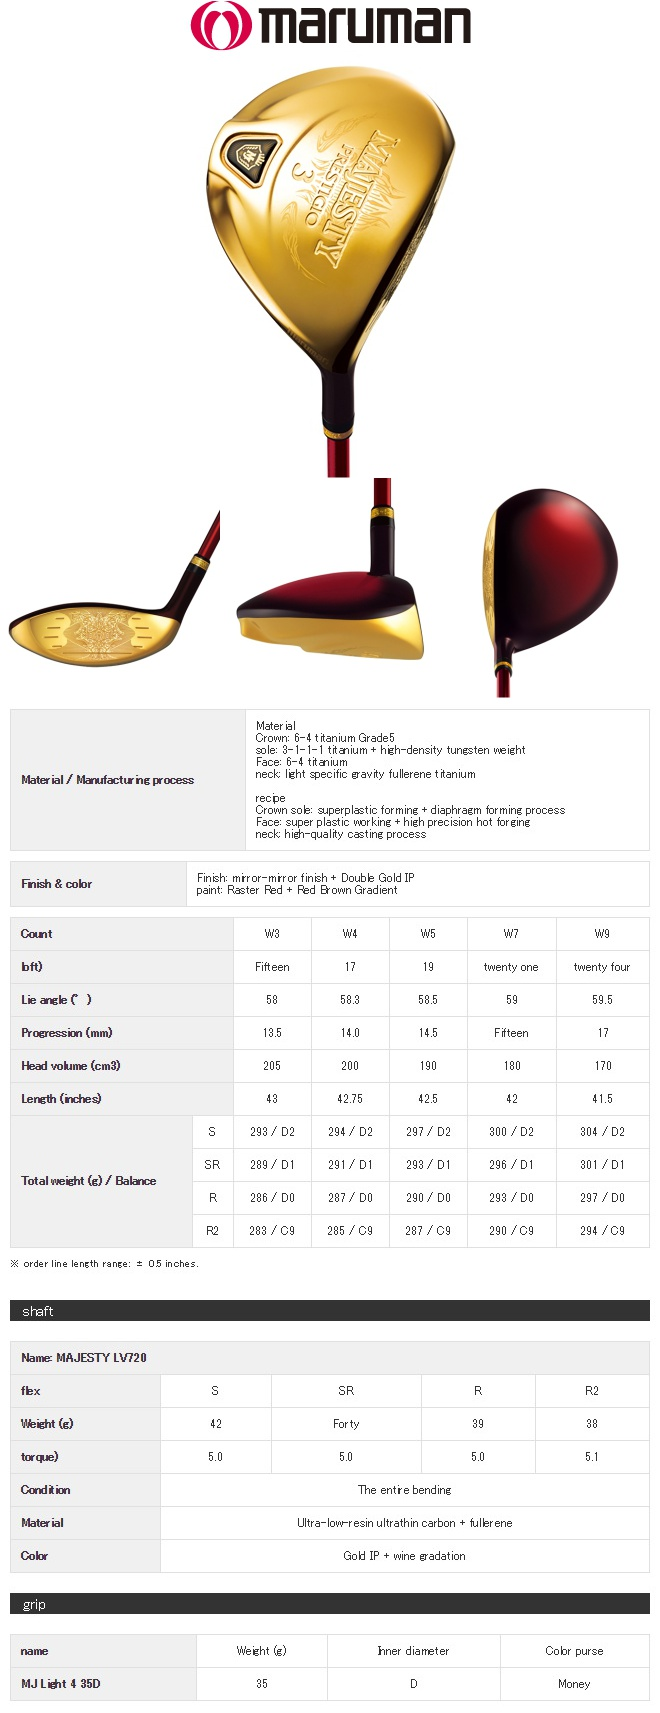 Maruman Majesty Prestigio 9 Fairway Wood